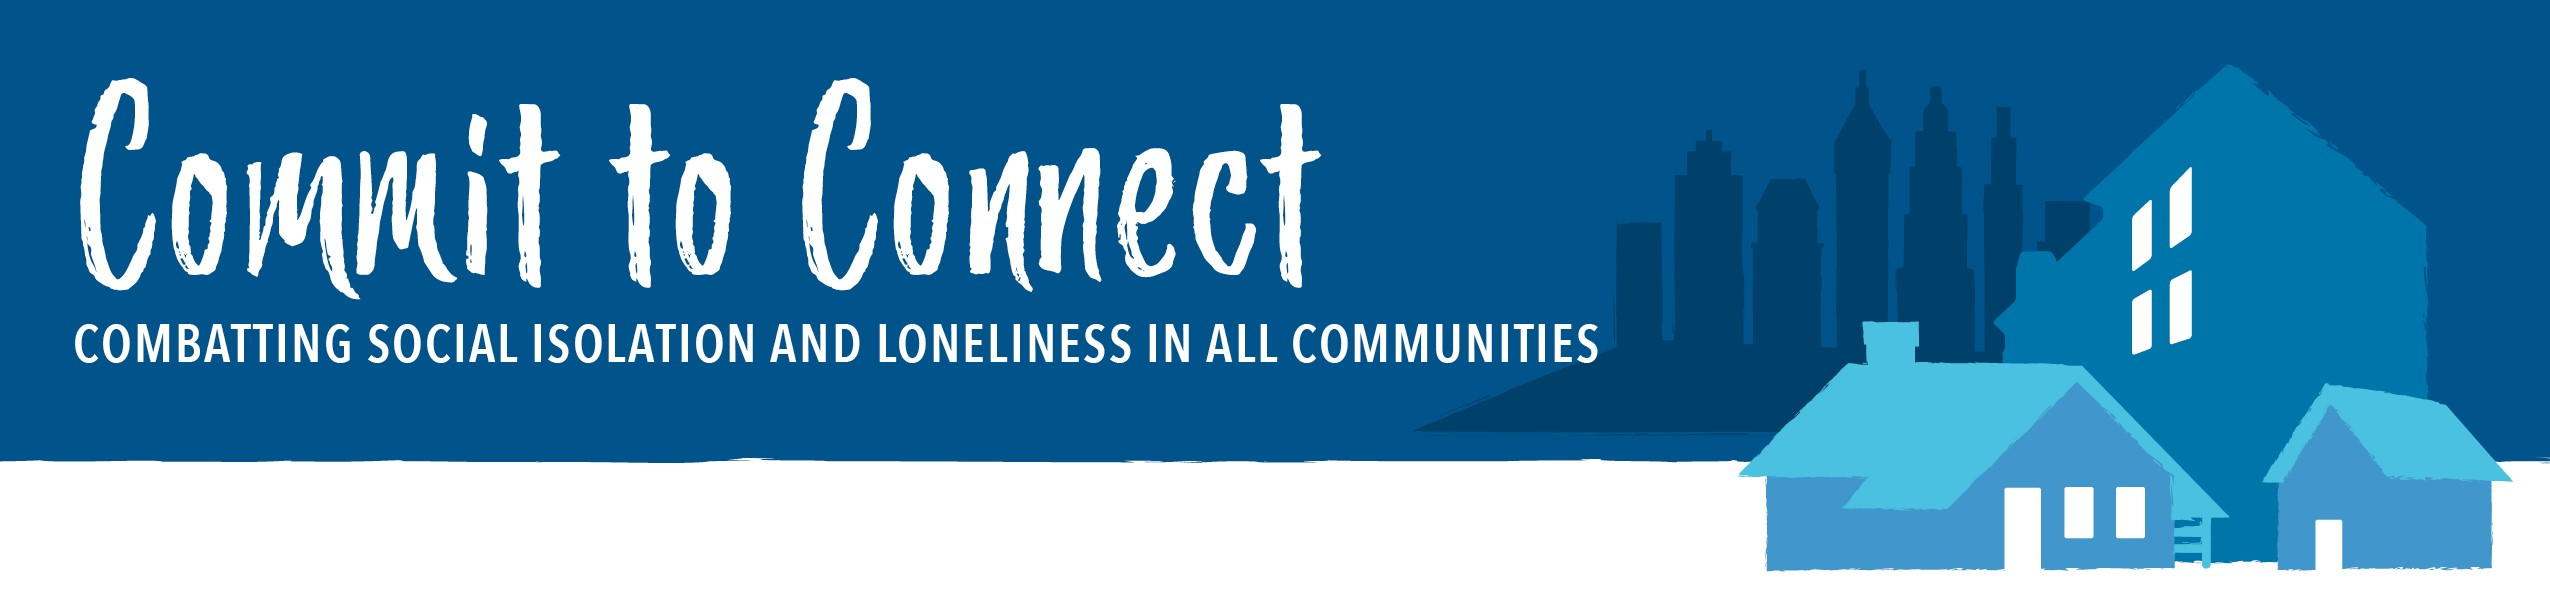 Commit to Connect: Combatting Social Isolation and Loneliness in All Communities